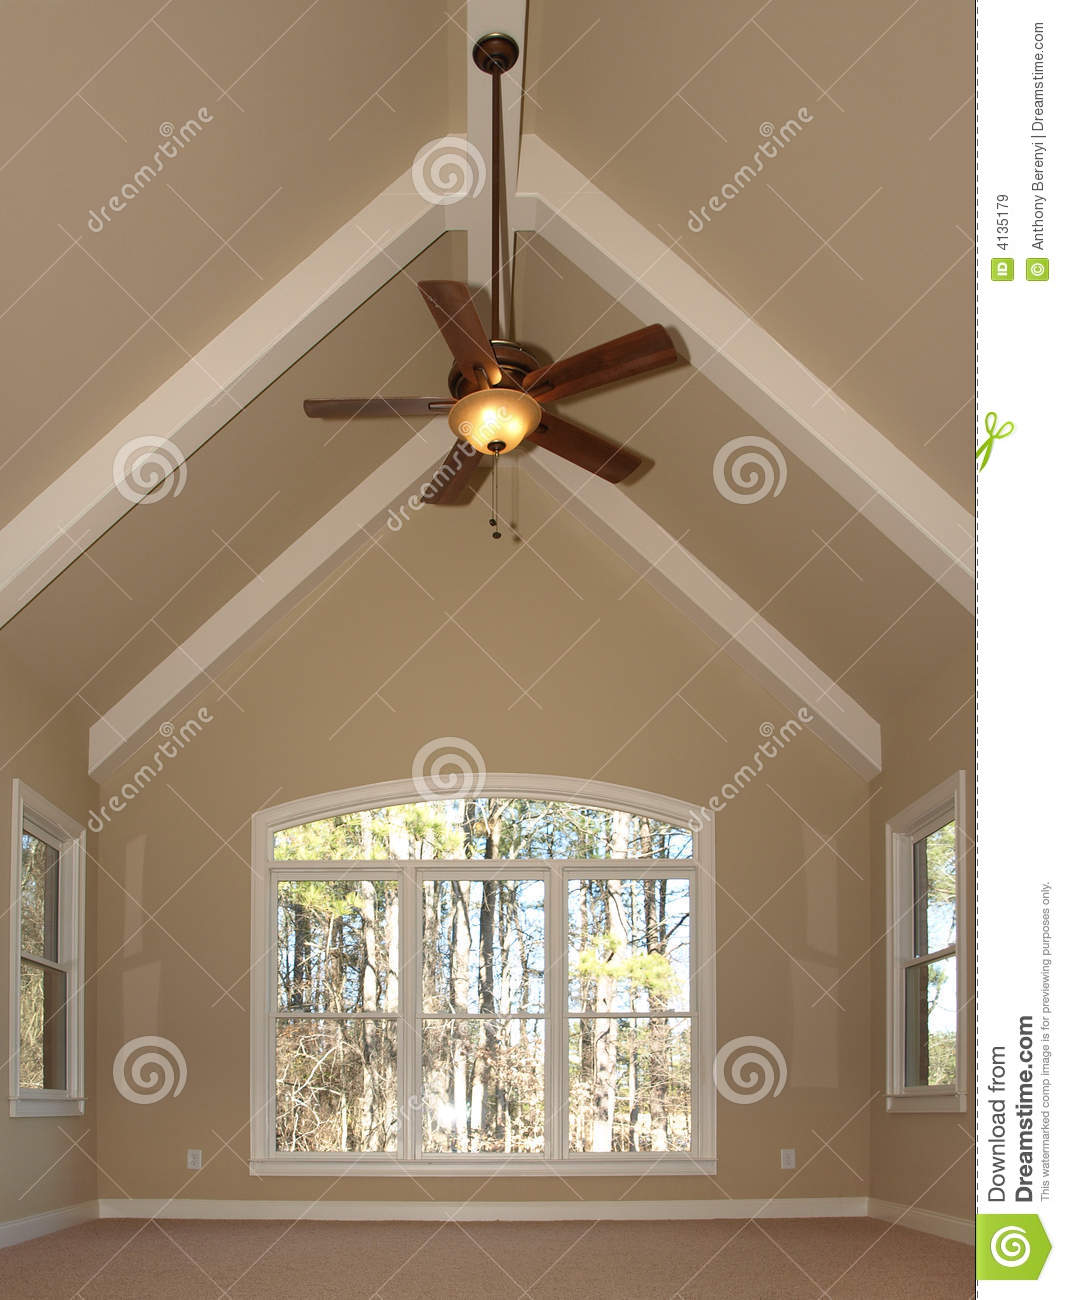 Luxury Room With Vaulted Ceiling Stock Image Image Of